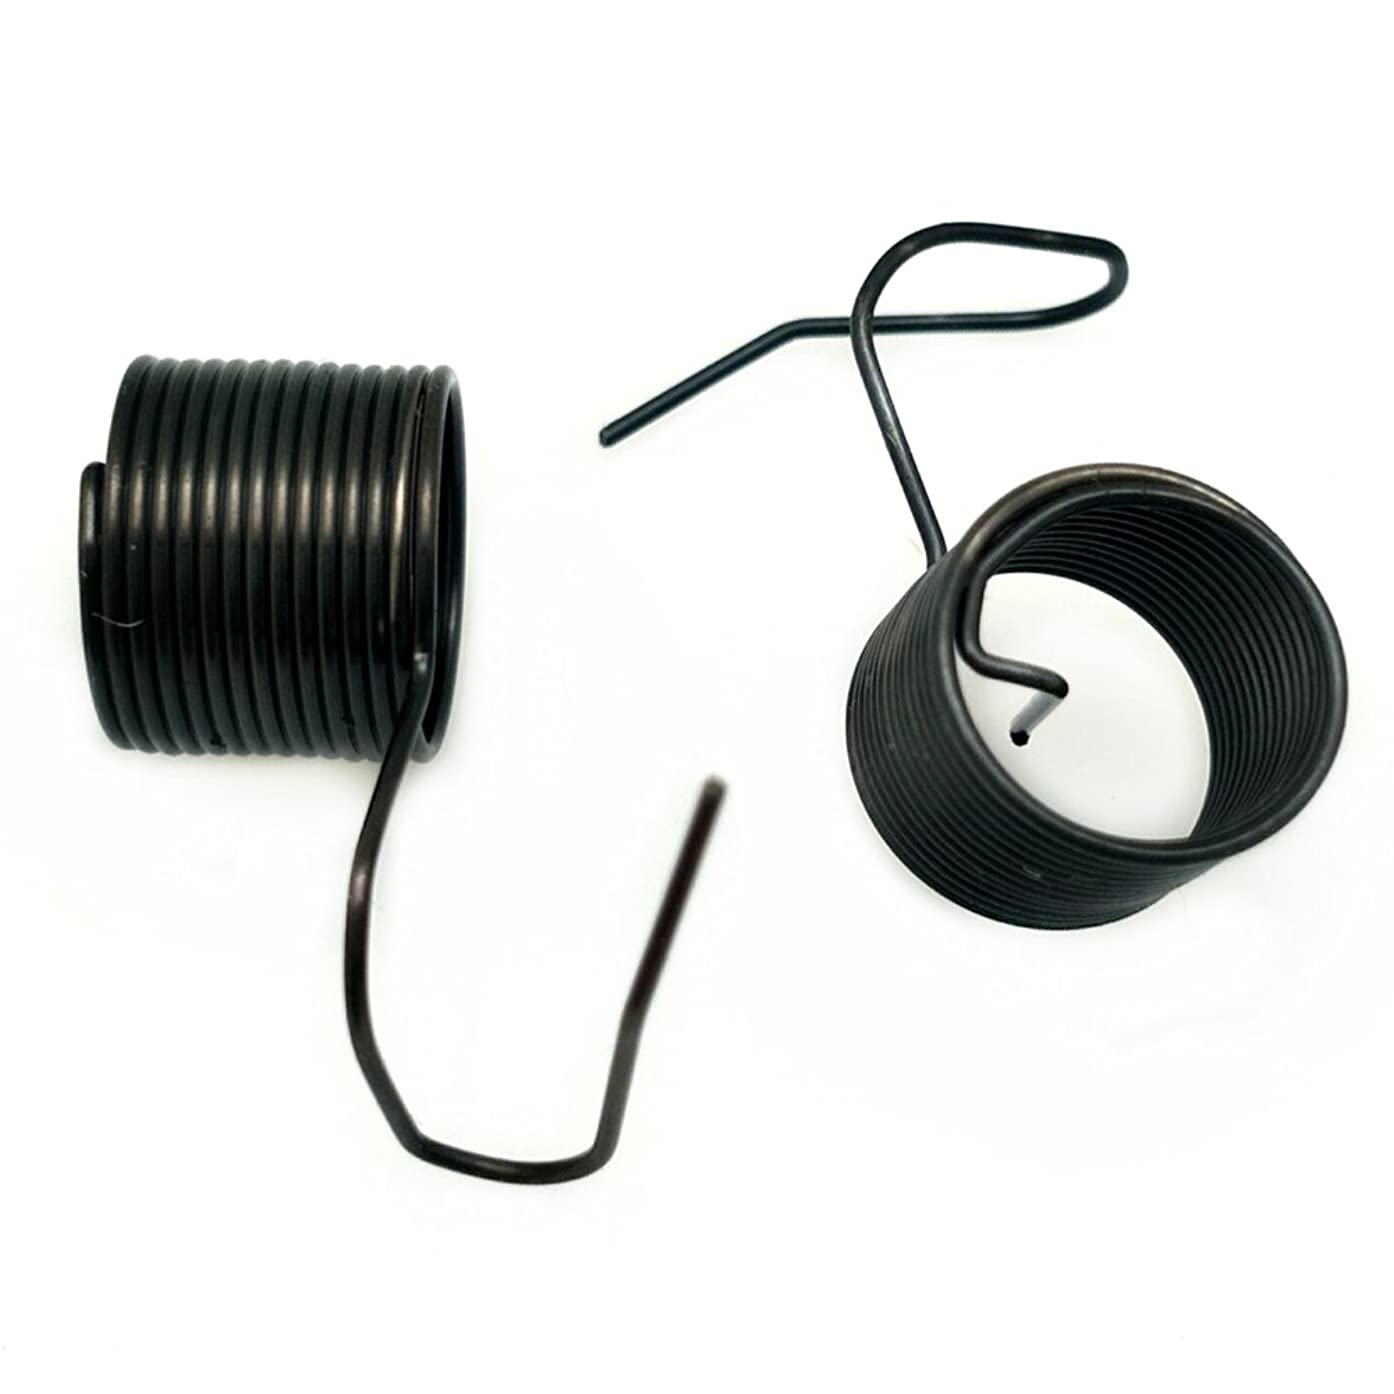 YEQIN Industrial Sewing Machine Tension Spring, Check, Will FIT, Brother, JUKI + More